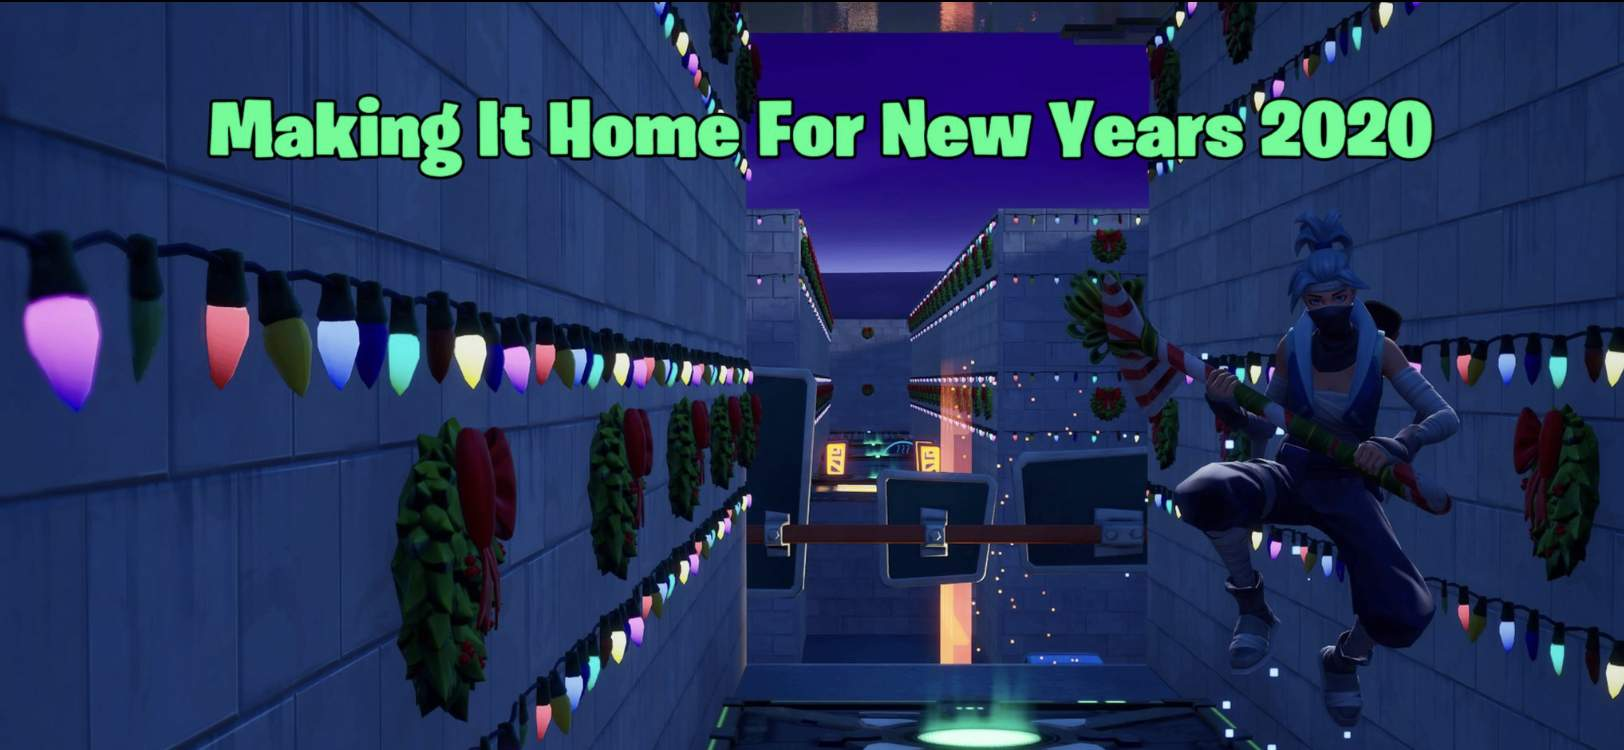 MAKING IT HOME FOR NEW YEARS 2020